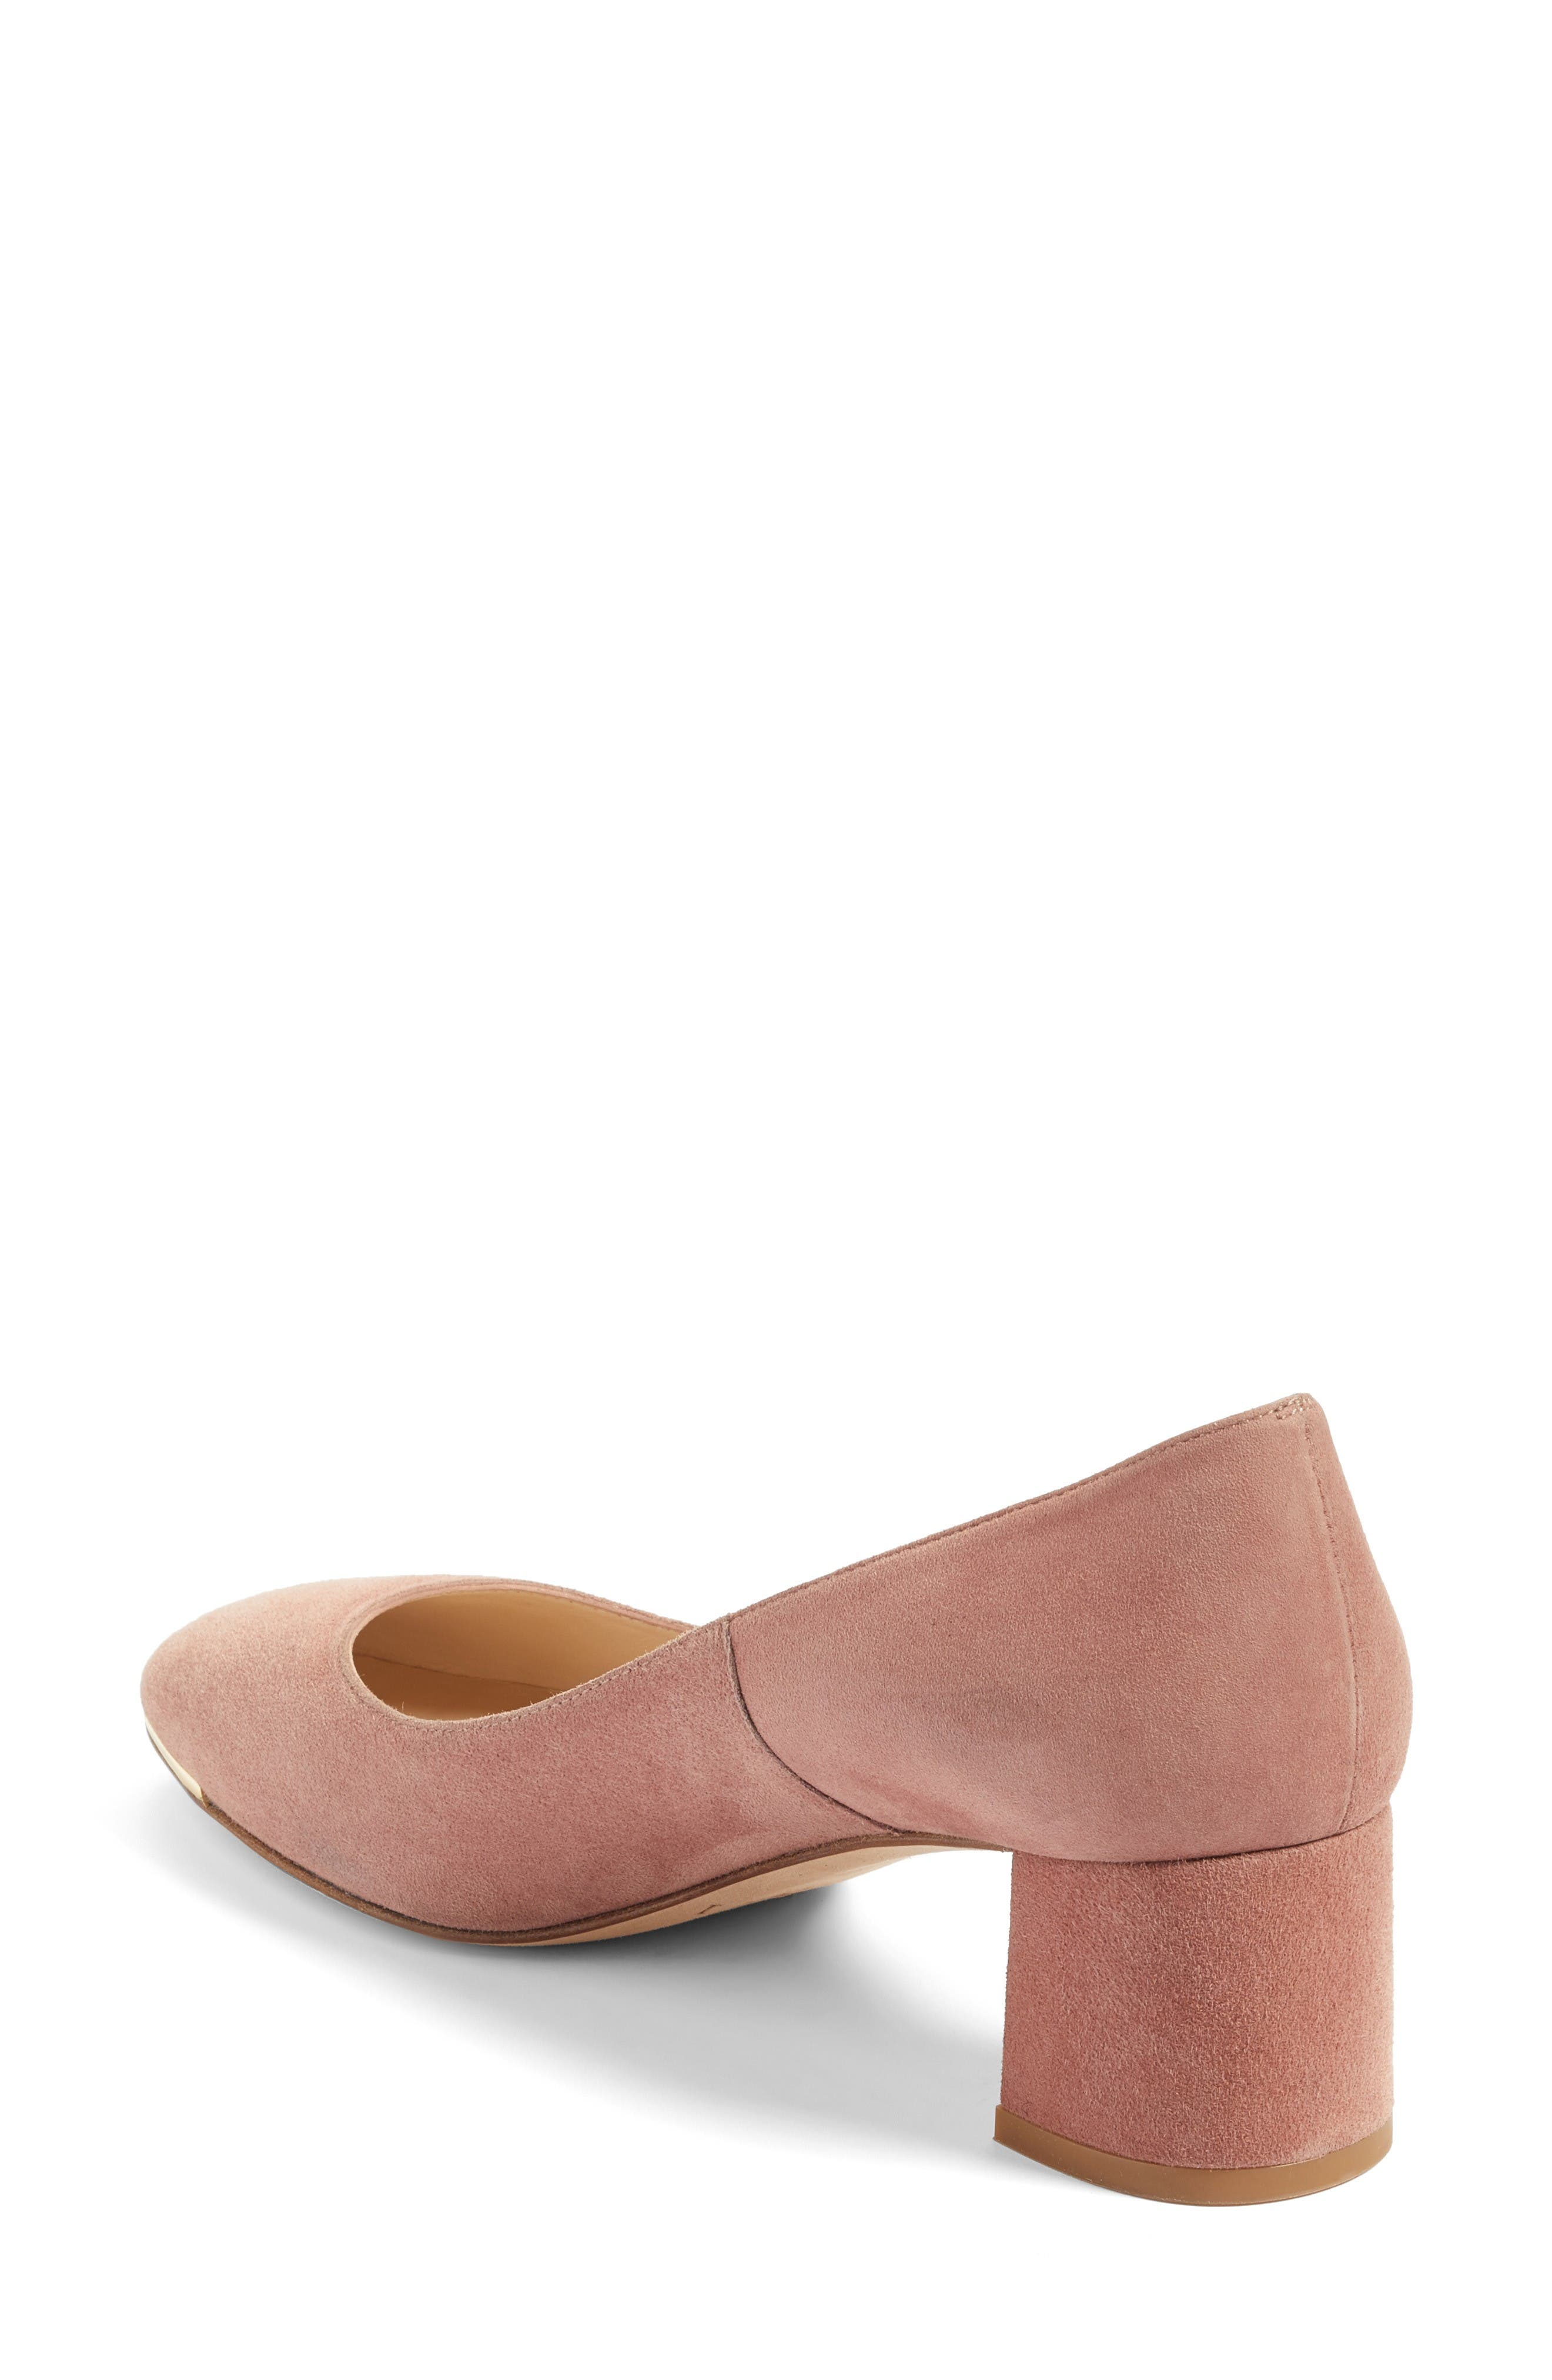 Clemence Pump,                             Alternate thumbnail 2, color,                             Pink/ Dark Pink